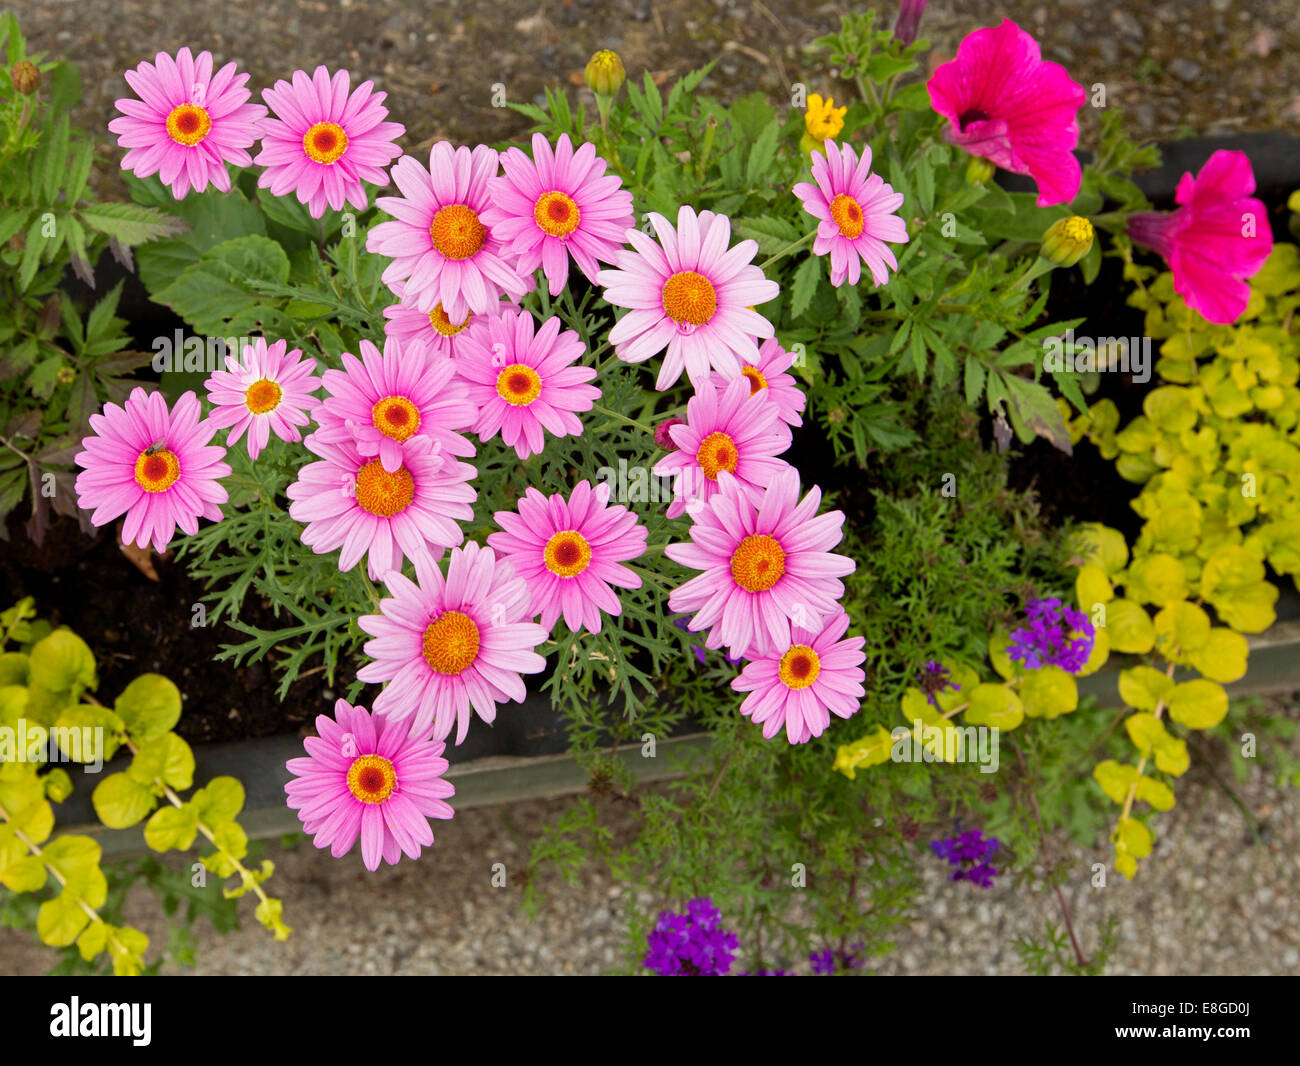 Bright pink flower with yellow centre stock photos bright pink cluster of vivid pink flowers with yellow red centres and fern like foliage of mightylinksfo